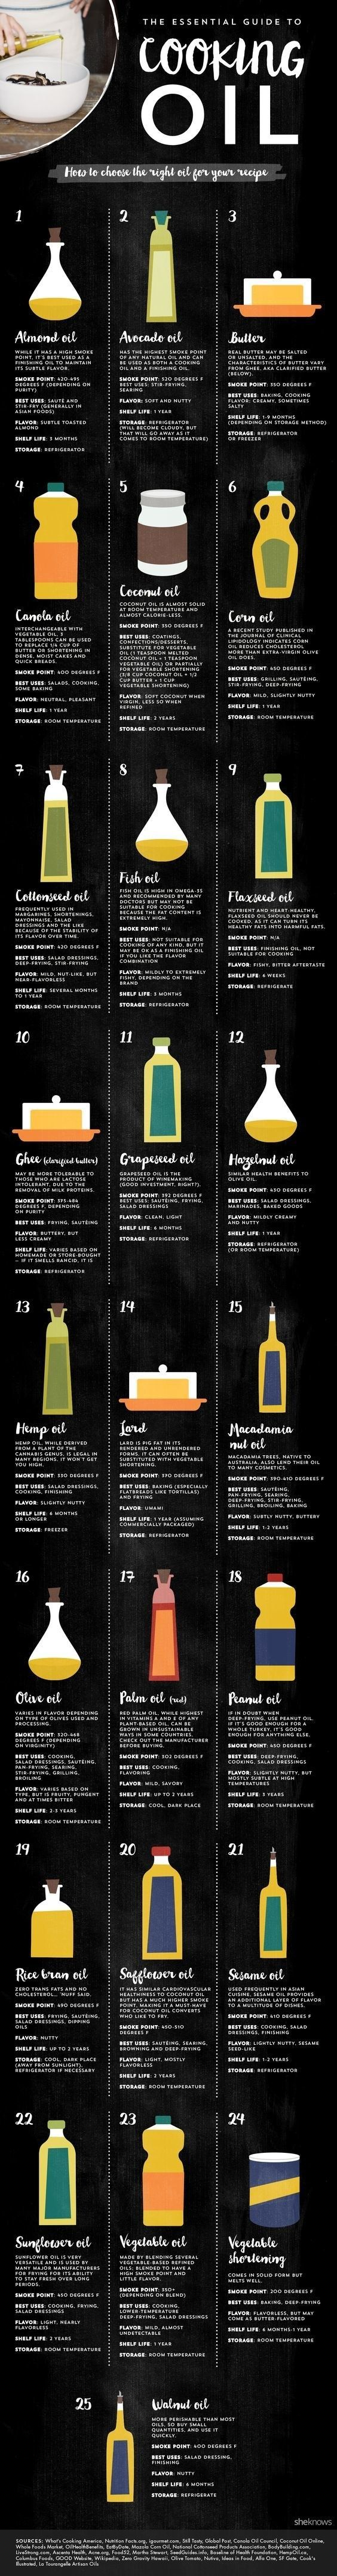 For understanding how to choose which oil would actually work best for that thing you want to make.